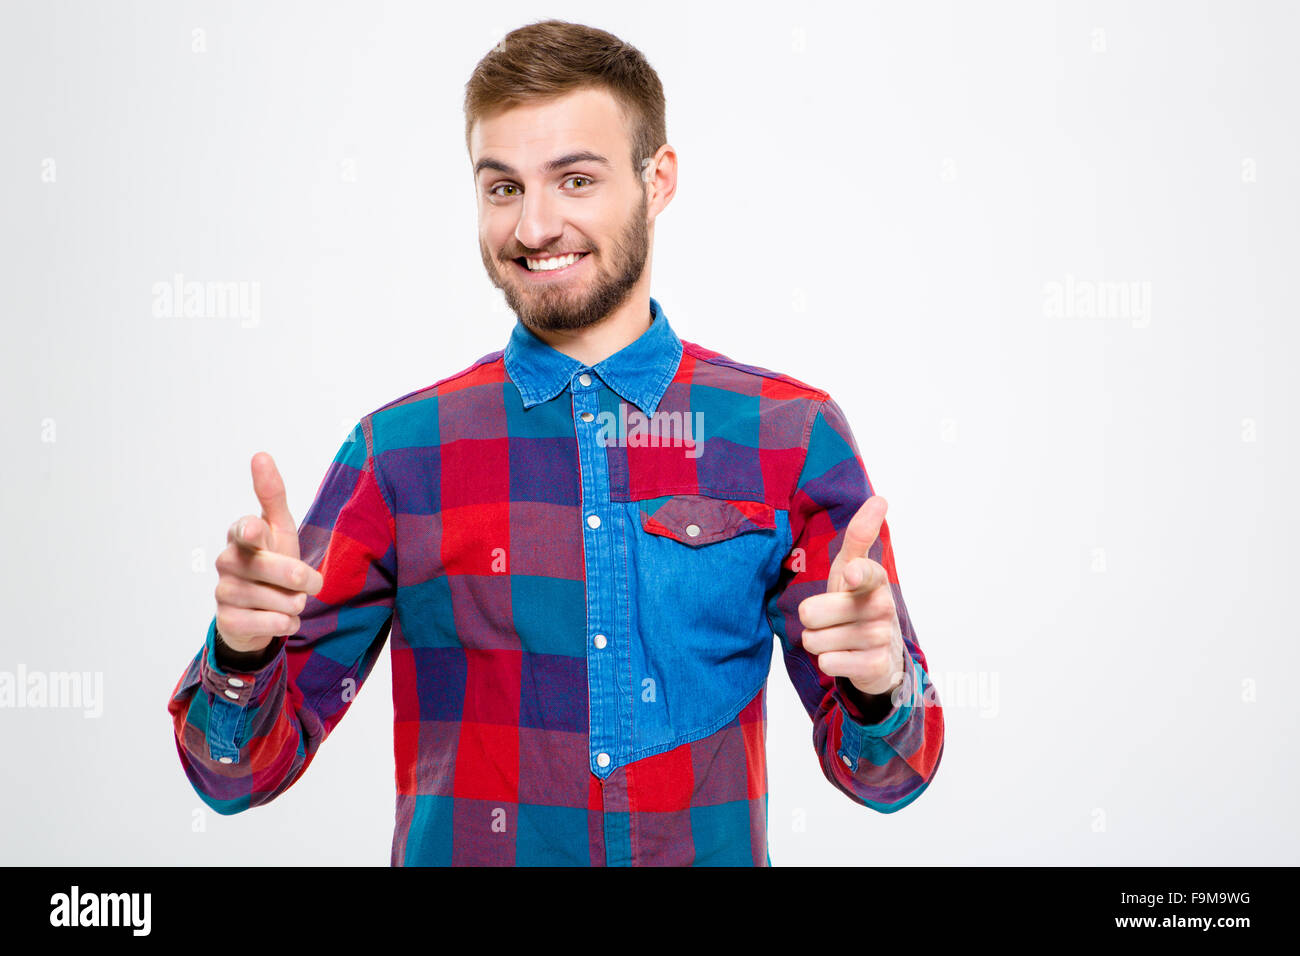 Portrait of a smiling man pointing finger at camera isolated on a white background - Stock Image